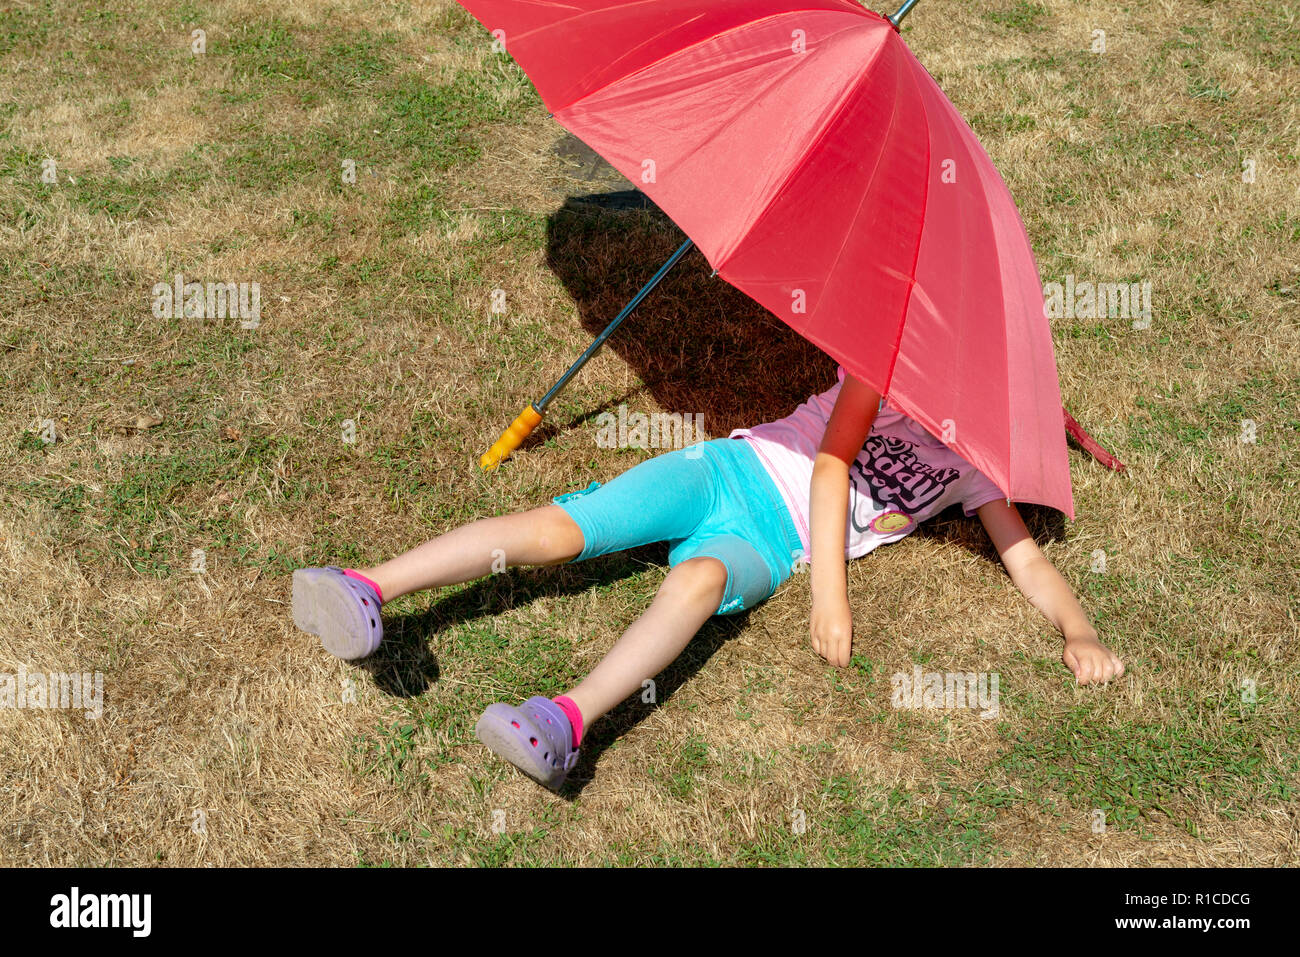 Young girl keeping out of the sun during the 2018 hot summer - Stock Image